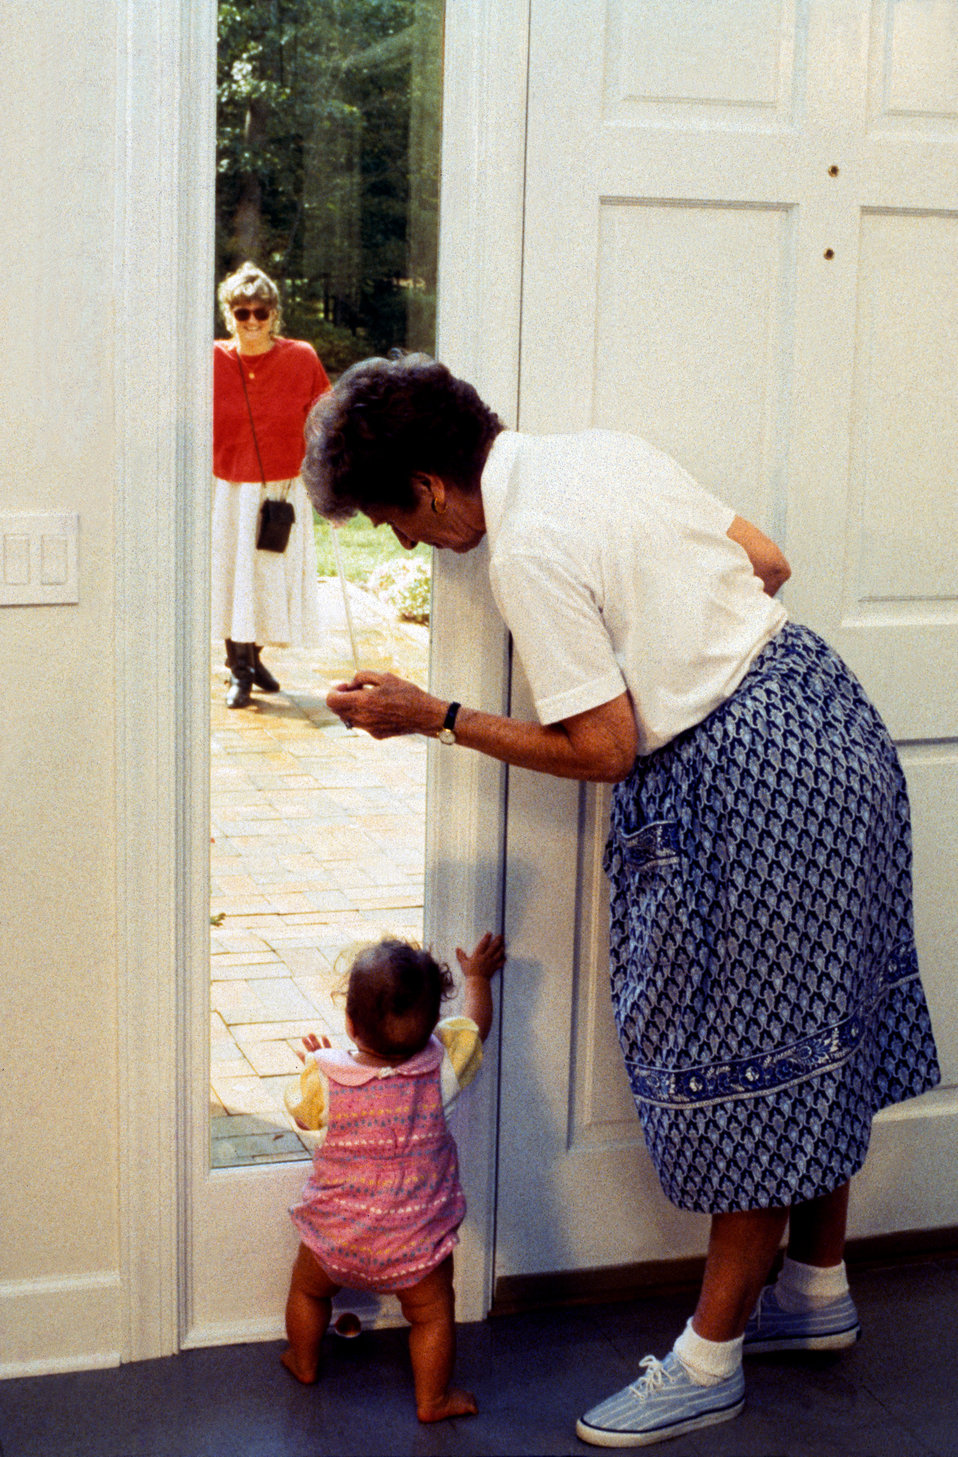 This 1996 image depicted a grandmother with her granddaughter as they were standing at the front door to their home, and looking out through